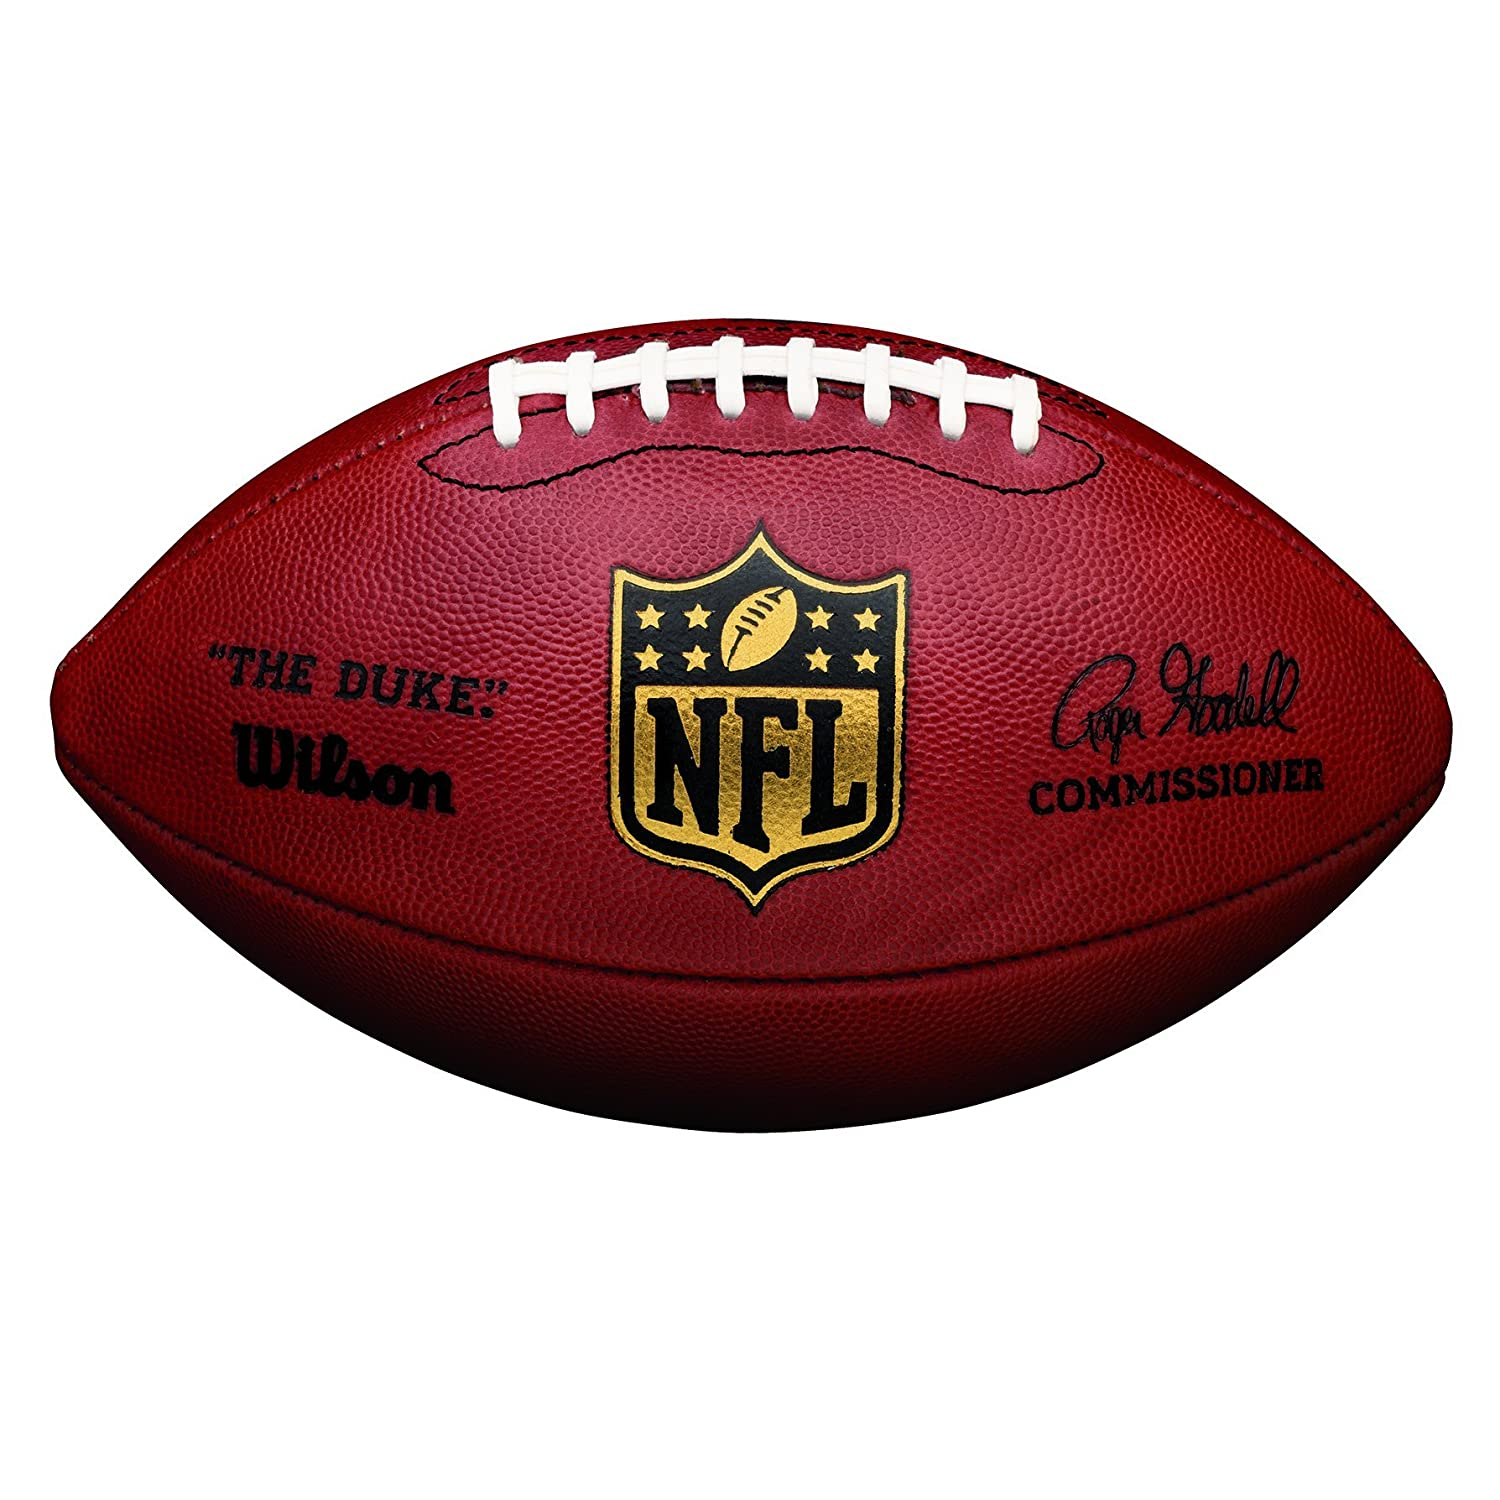 Wilson Ballon Football Américain, Compétition, Ballon Officiel de la NFL, Taille Officielle, NFL DUKE GAME LEATHER FOOTBALL, Brun, WTF1100 WIMQG|#Wilson Team Sport b2s2016 ballon de football americain ballon de sport